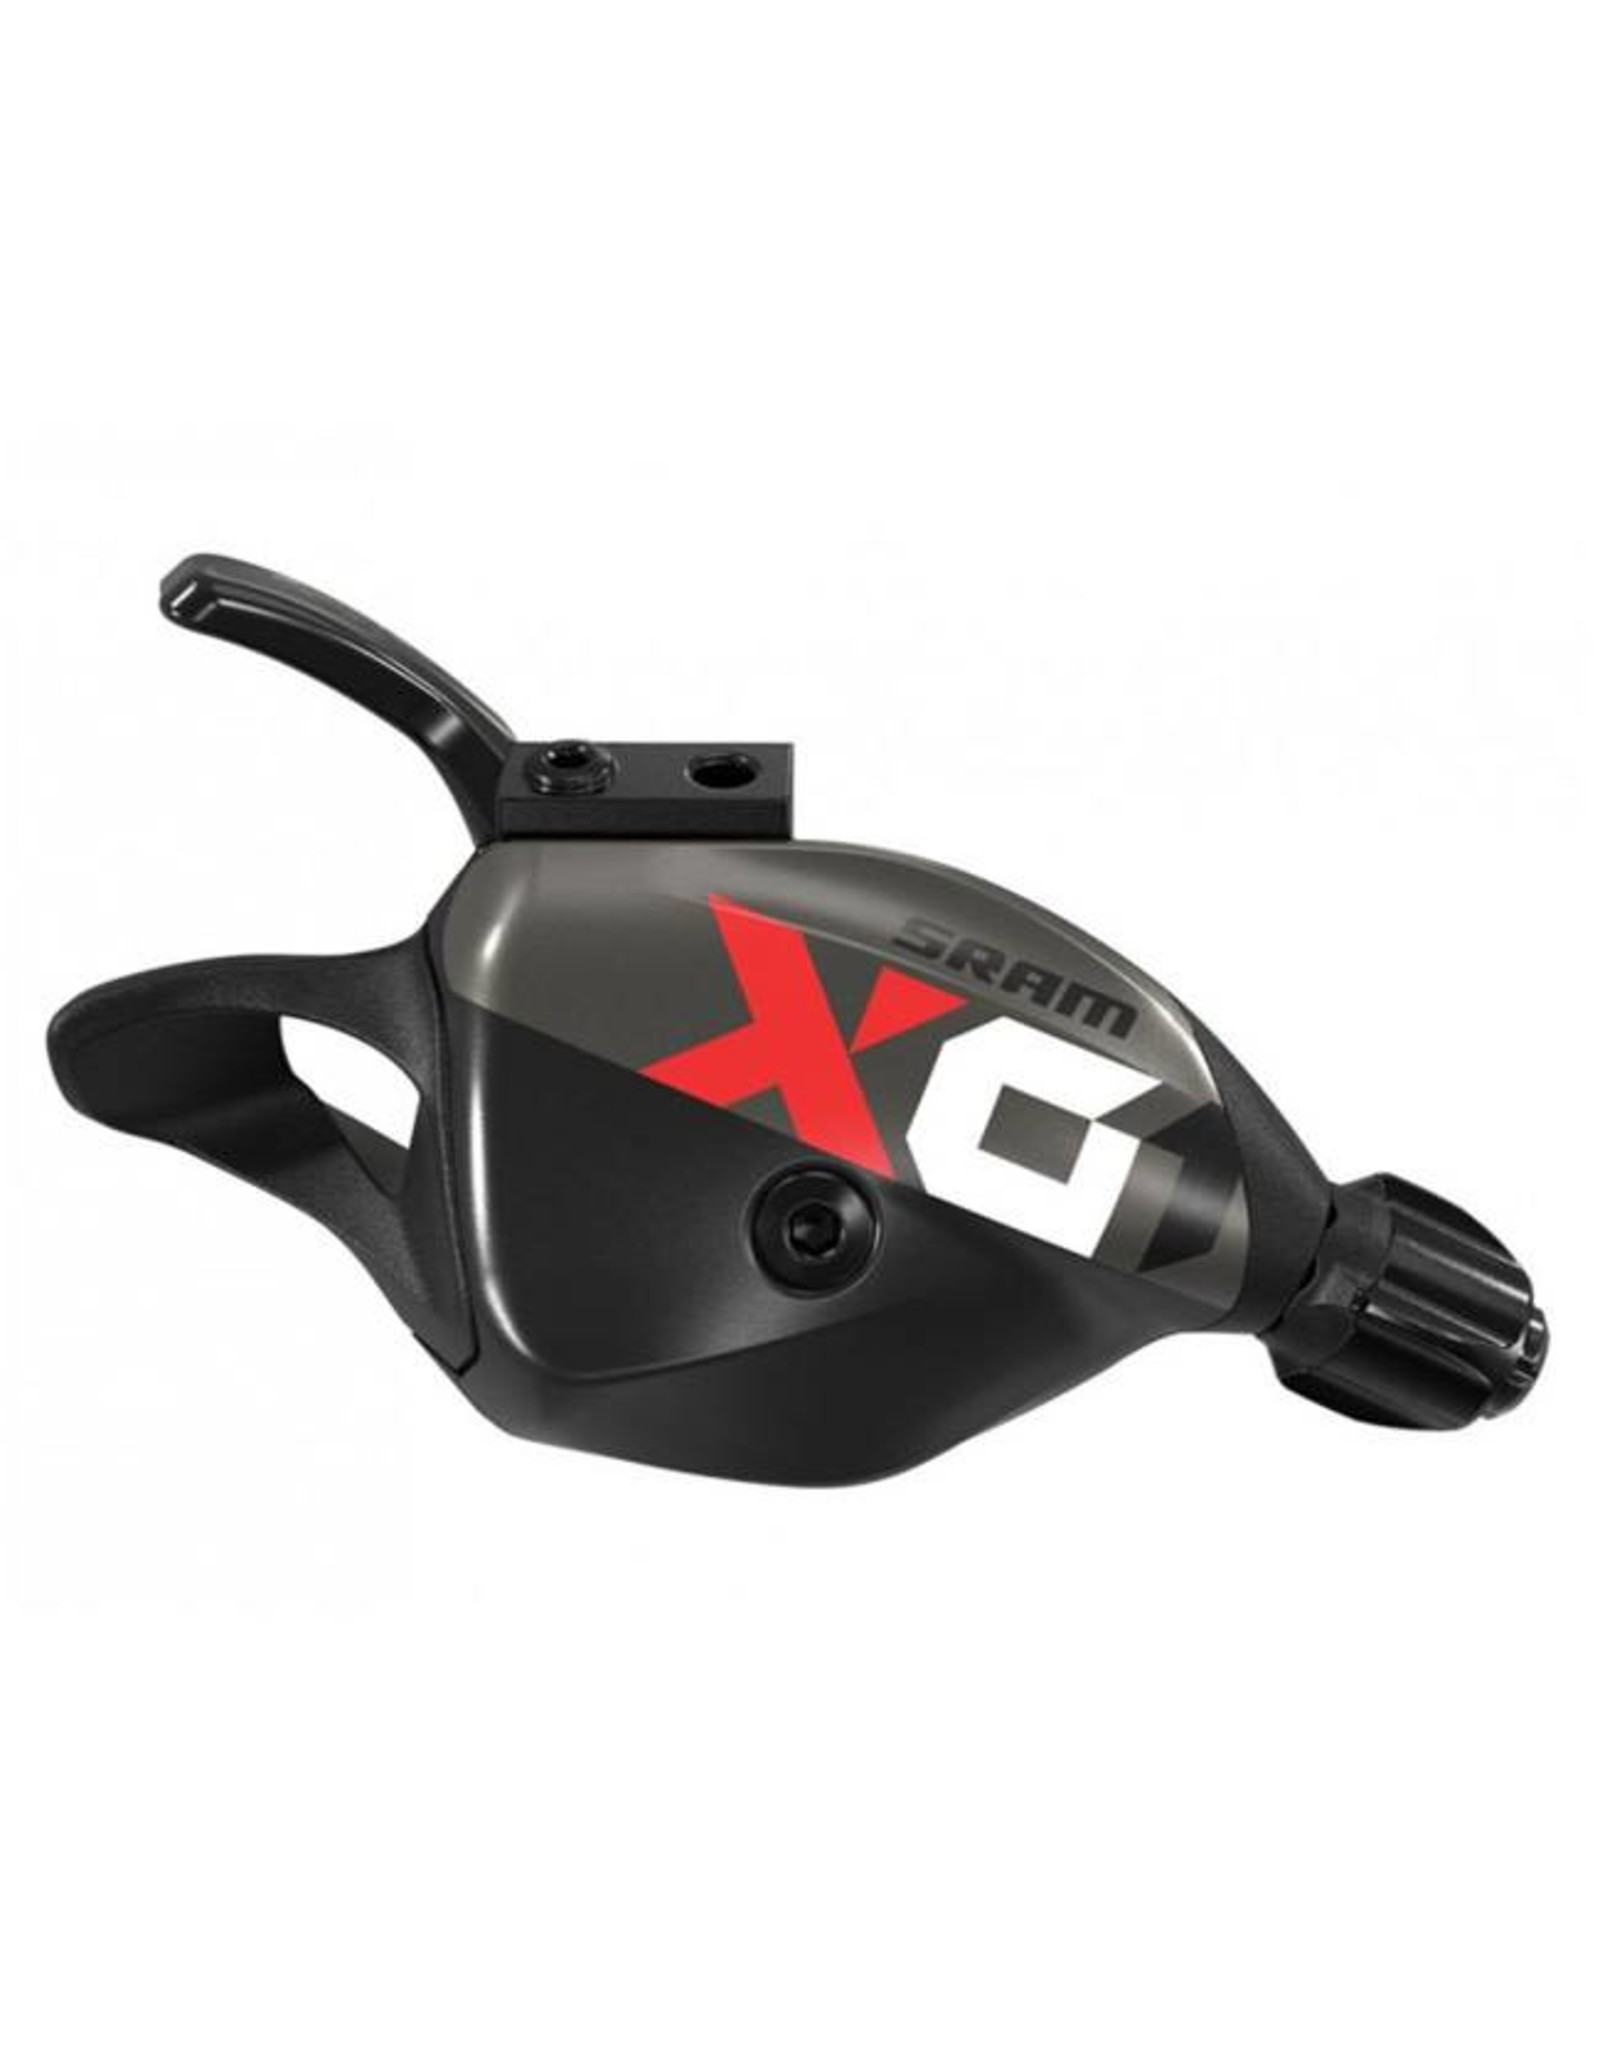 SRAM SRAM X01 Eagle 12-Speed Trigger Shifter with Discrete Clamp, Black with Red Logo